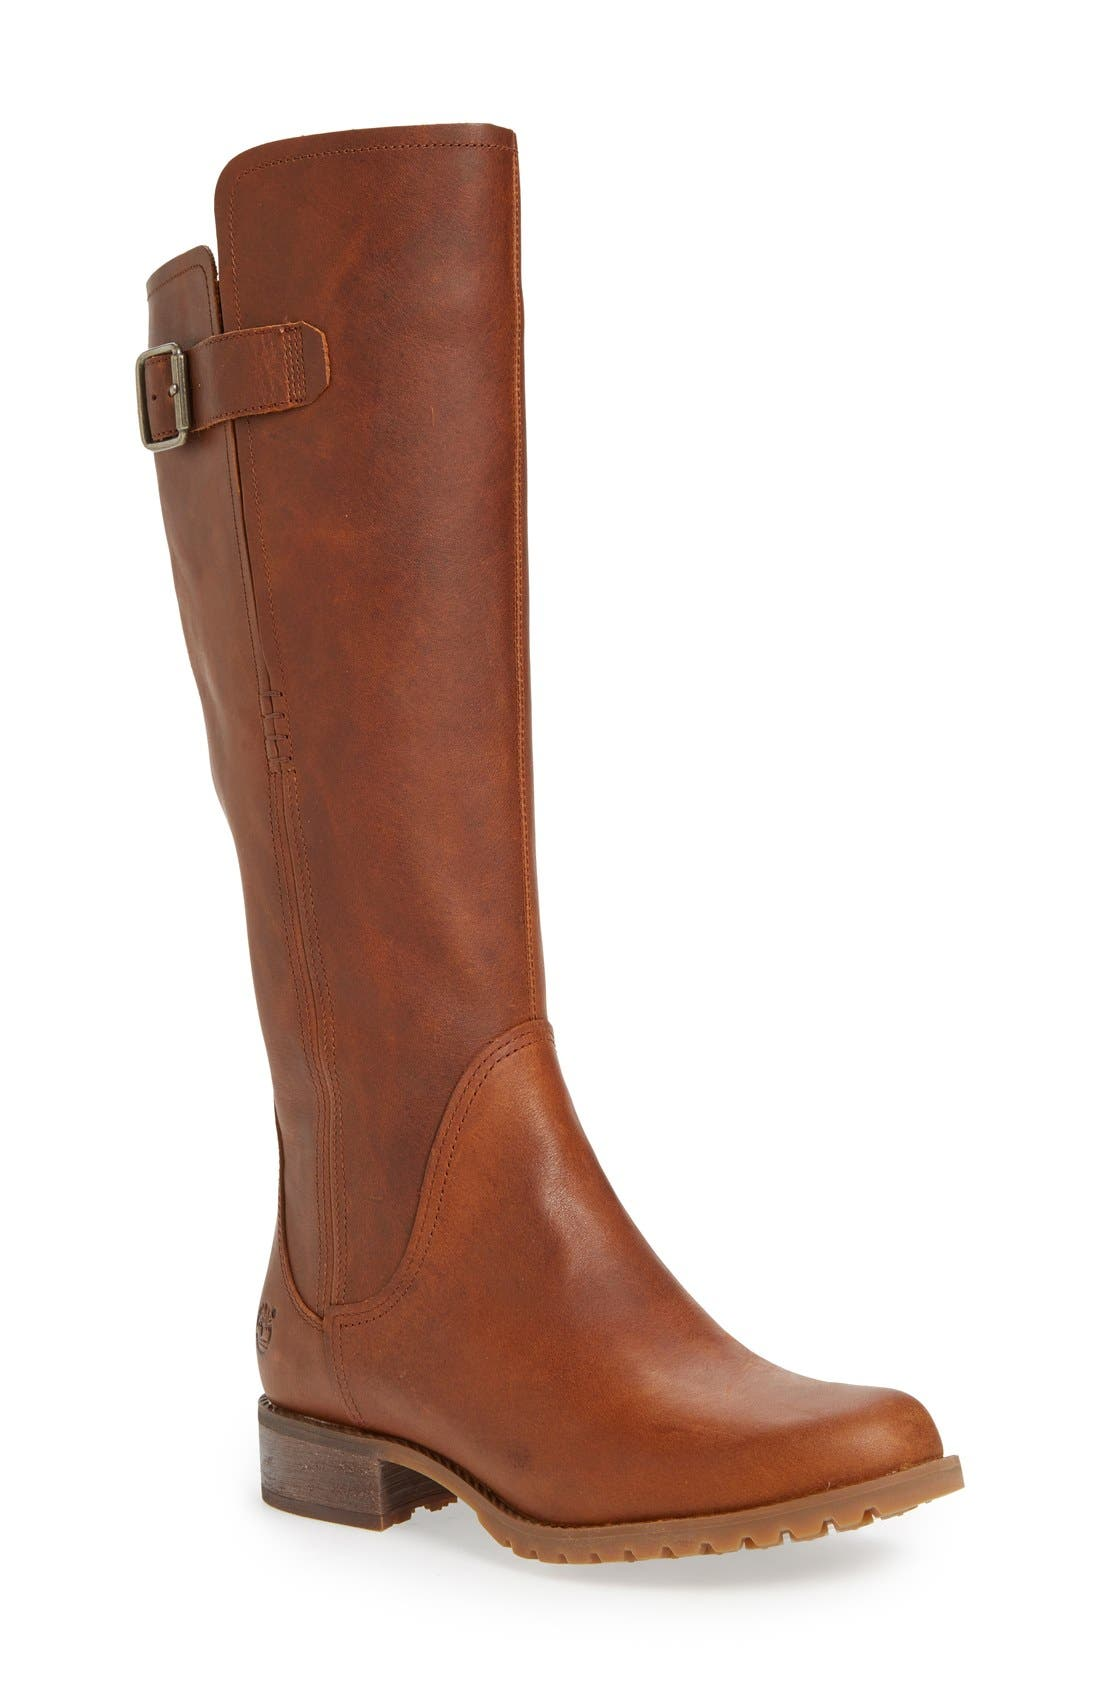 TIMBERLAND 'Banfield' Waterproof Knee High Boot